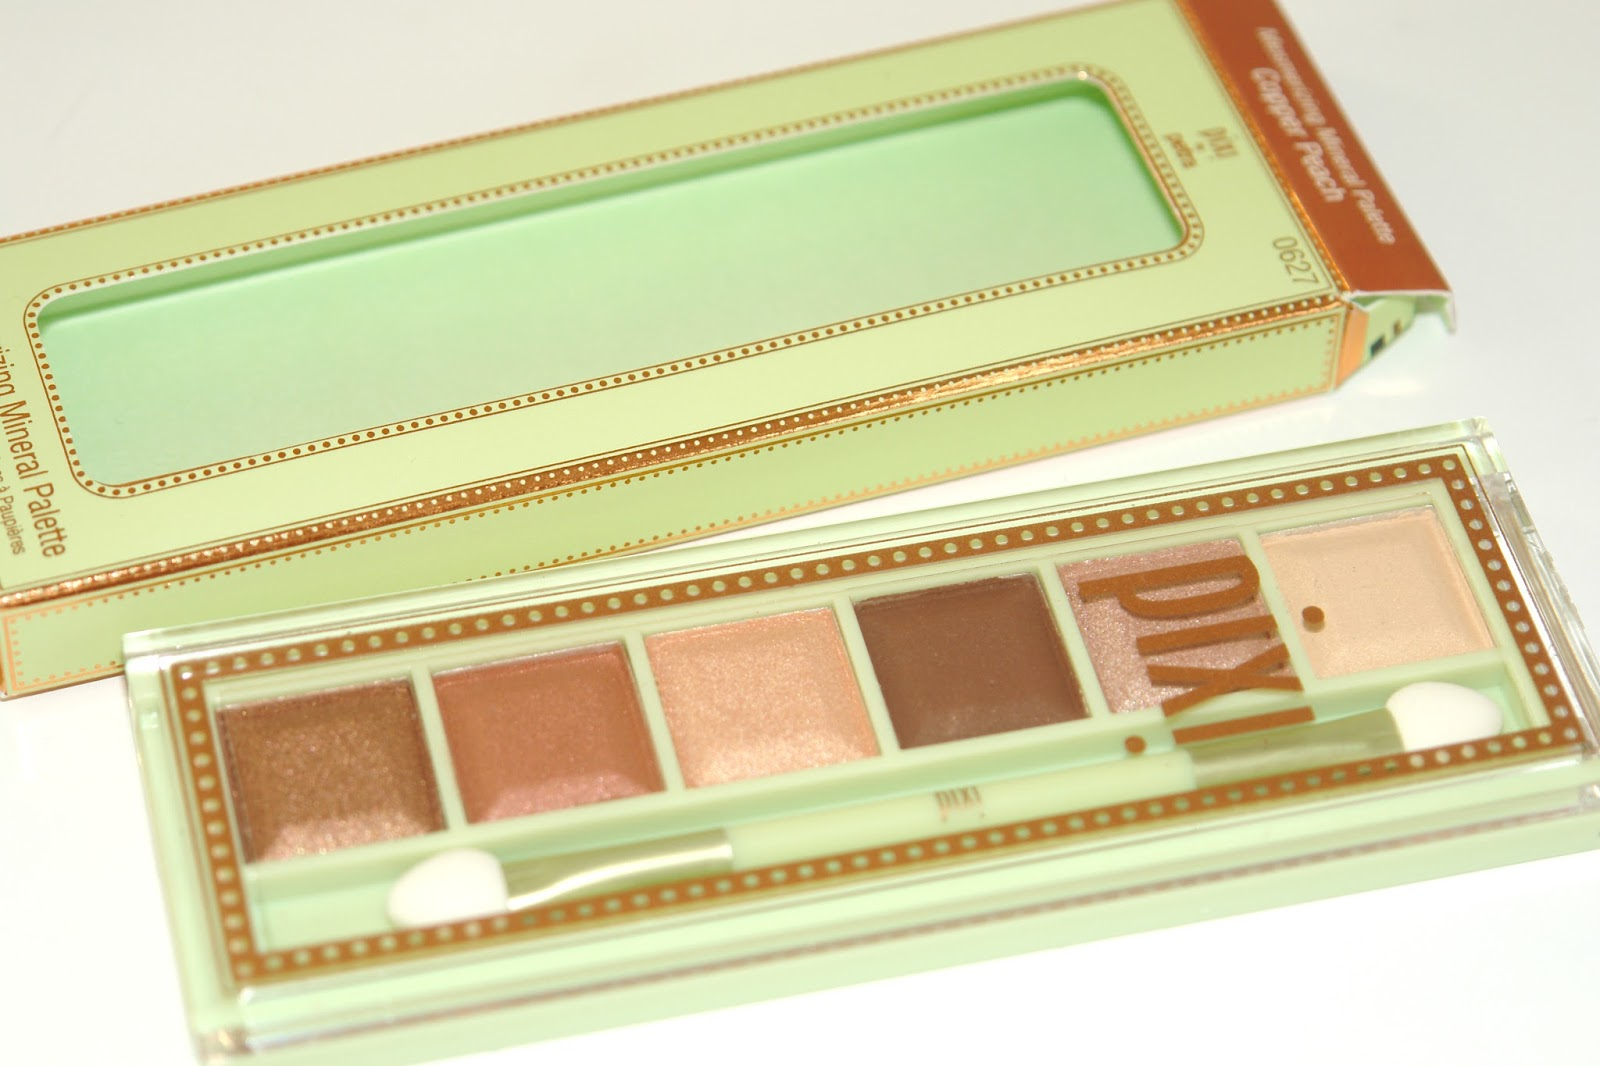 PIXI Mesmerizing Mineral Palette in Copper Peach review, eye shadows, make up, palette, PIXI, review, blogger, swatches